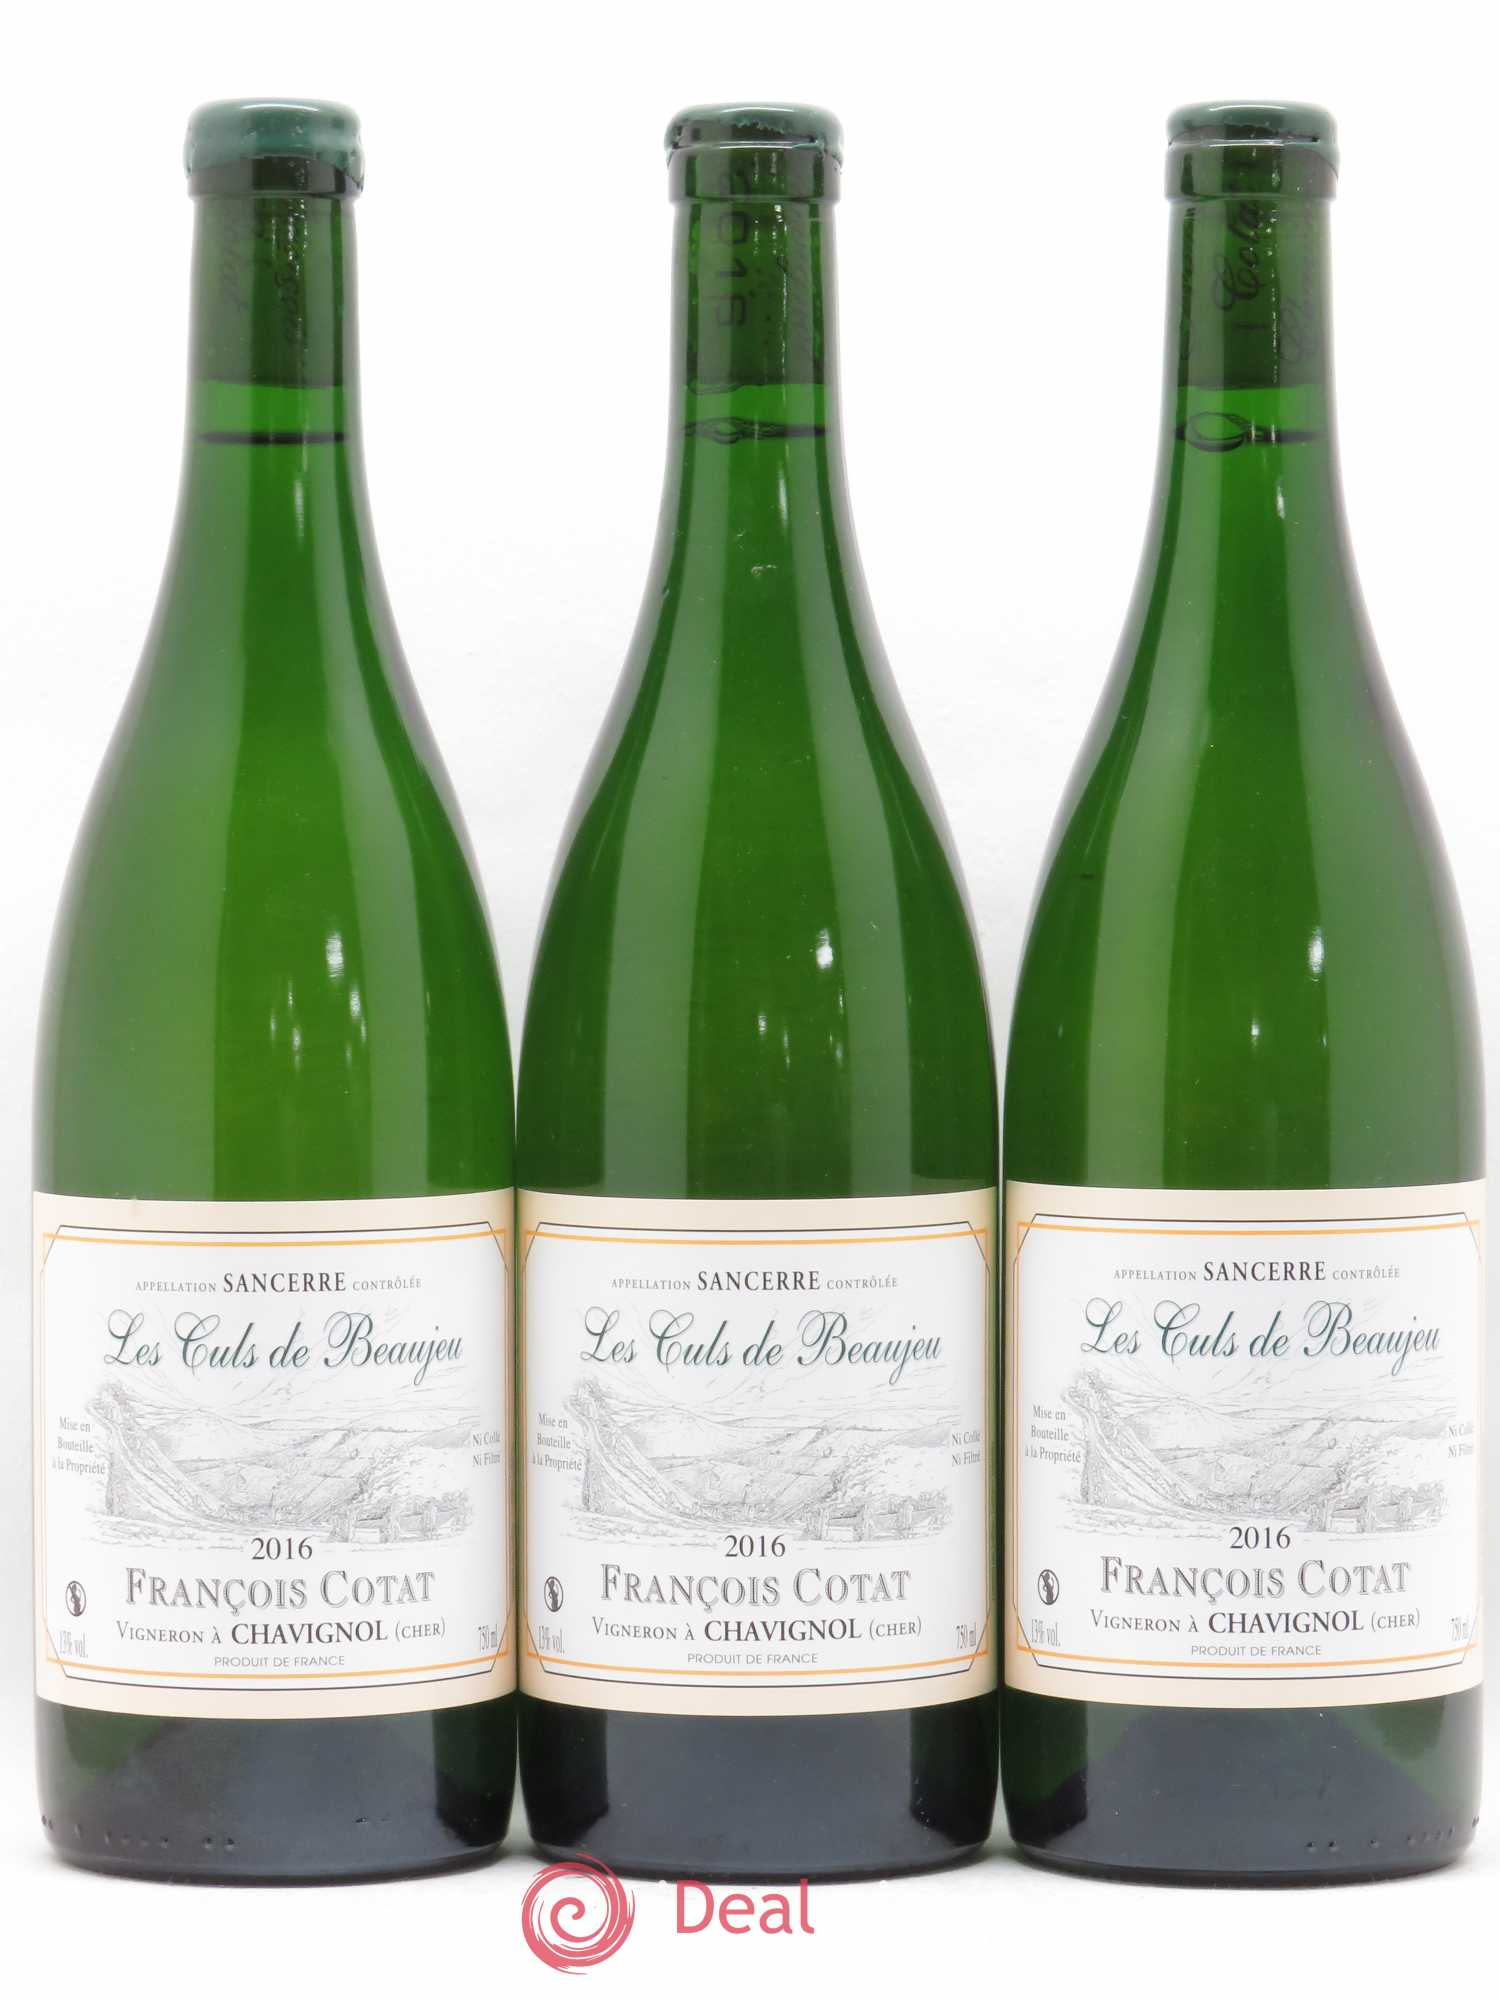 Sancerre Les Culs de Beaujeu François Cotat  2016 - Lot of 3 Bottles